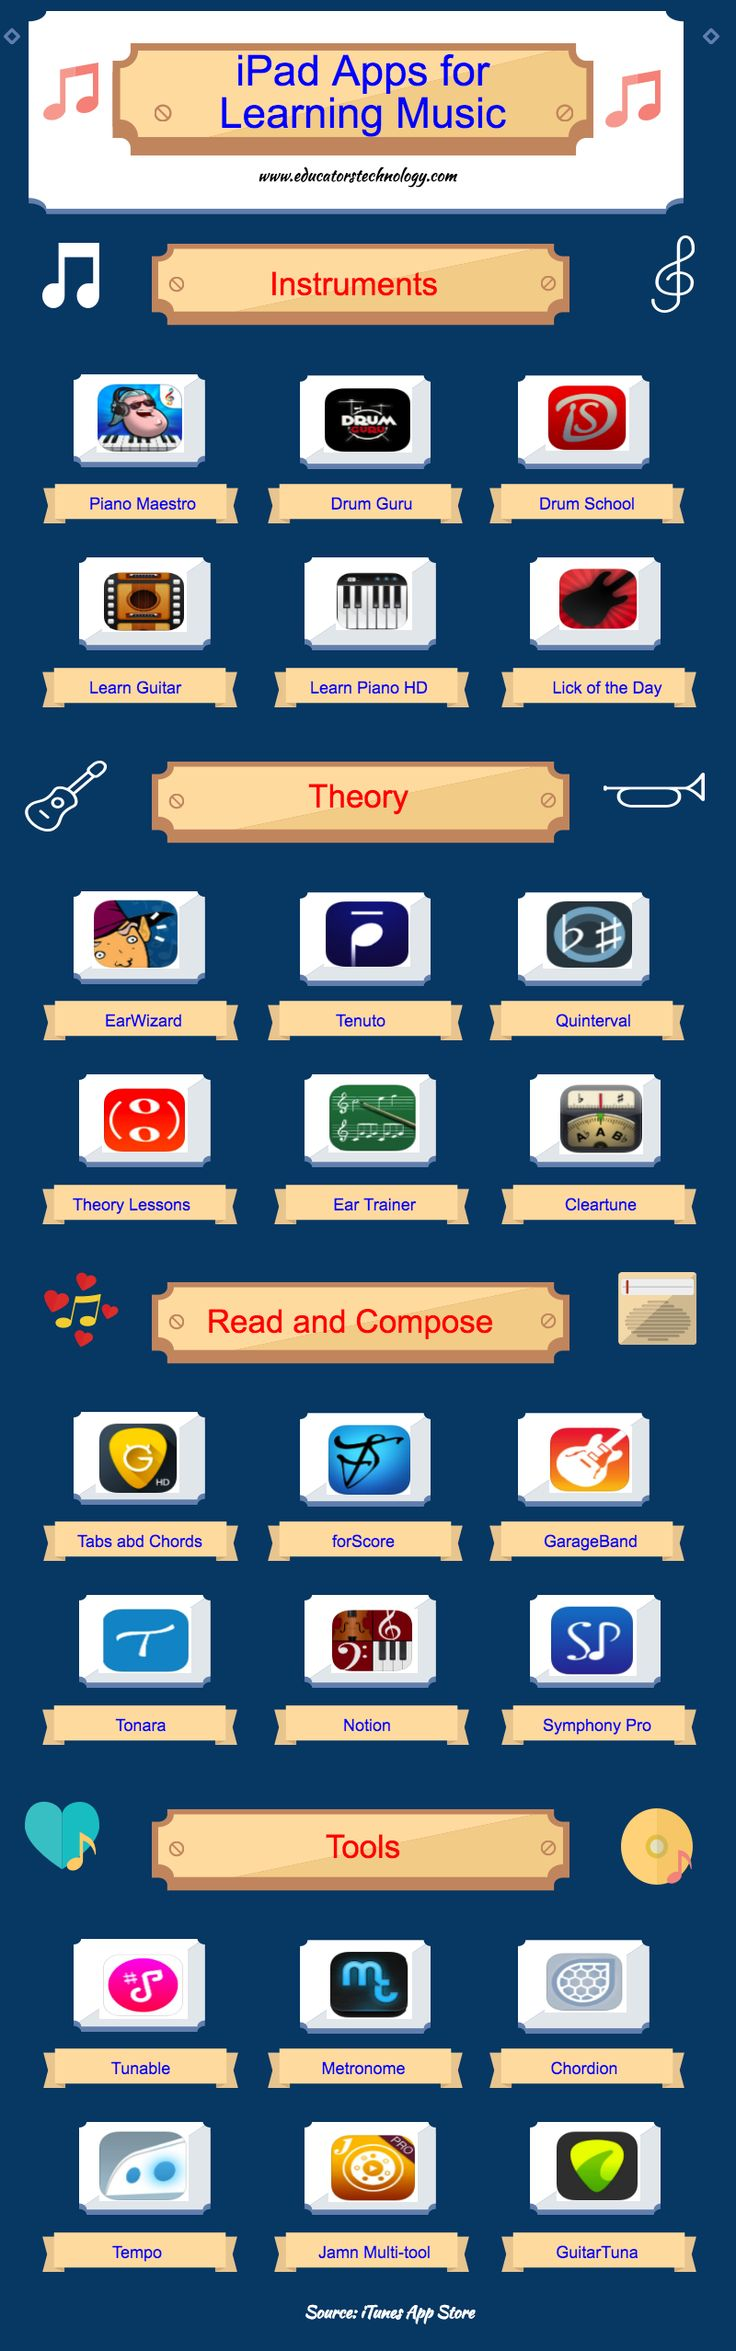 An Interesting Infographic Featuring Top Apps for Learning Music